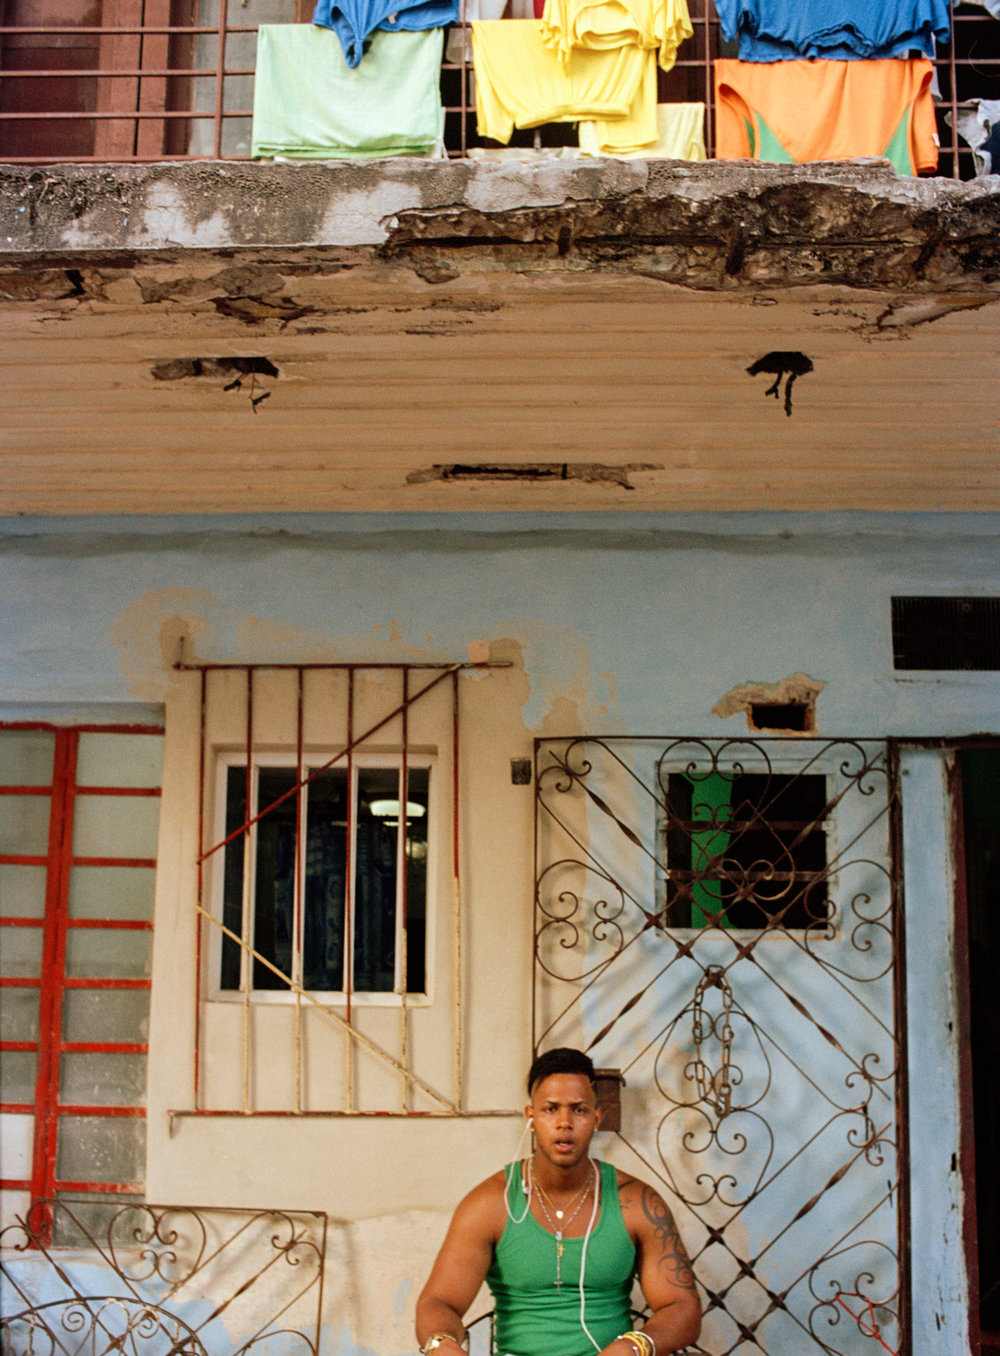 38havana_guy_sitting098.jpg